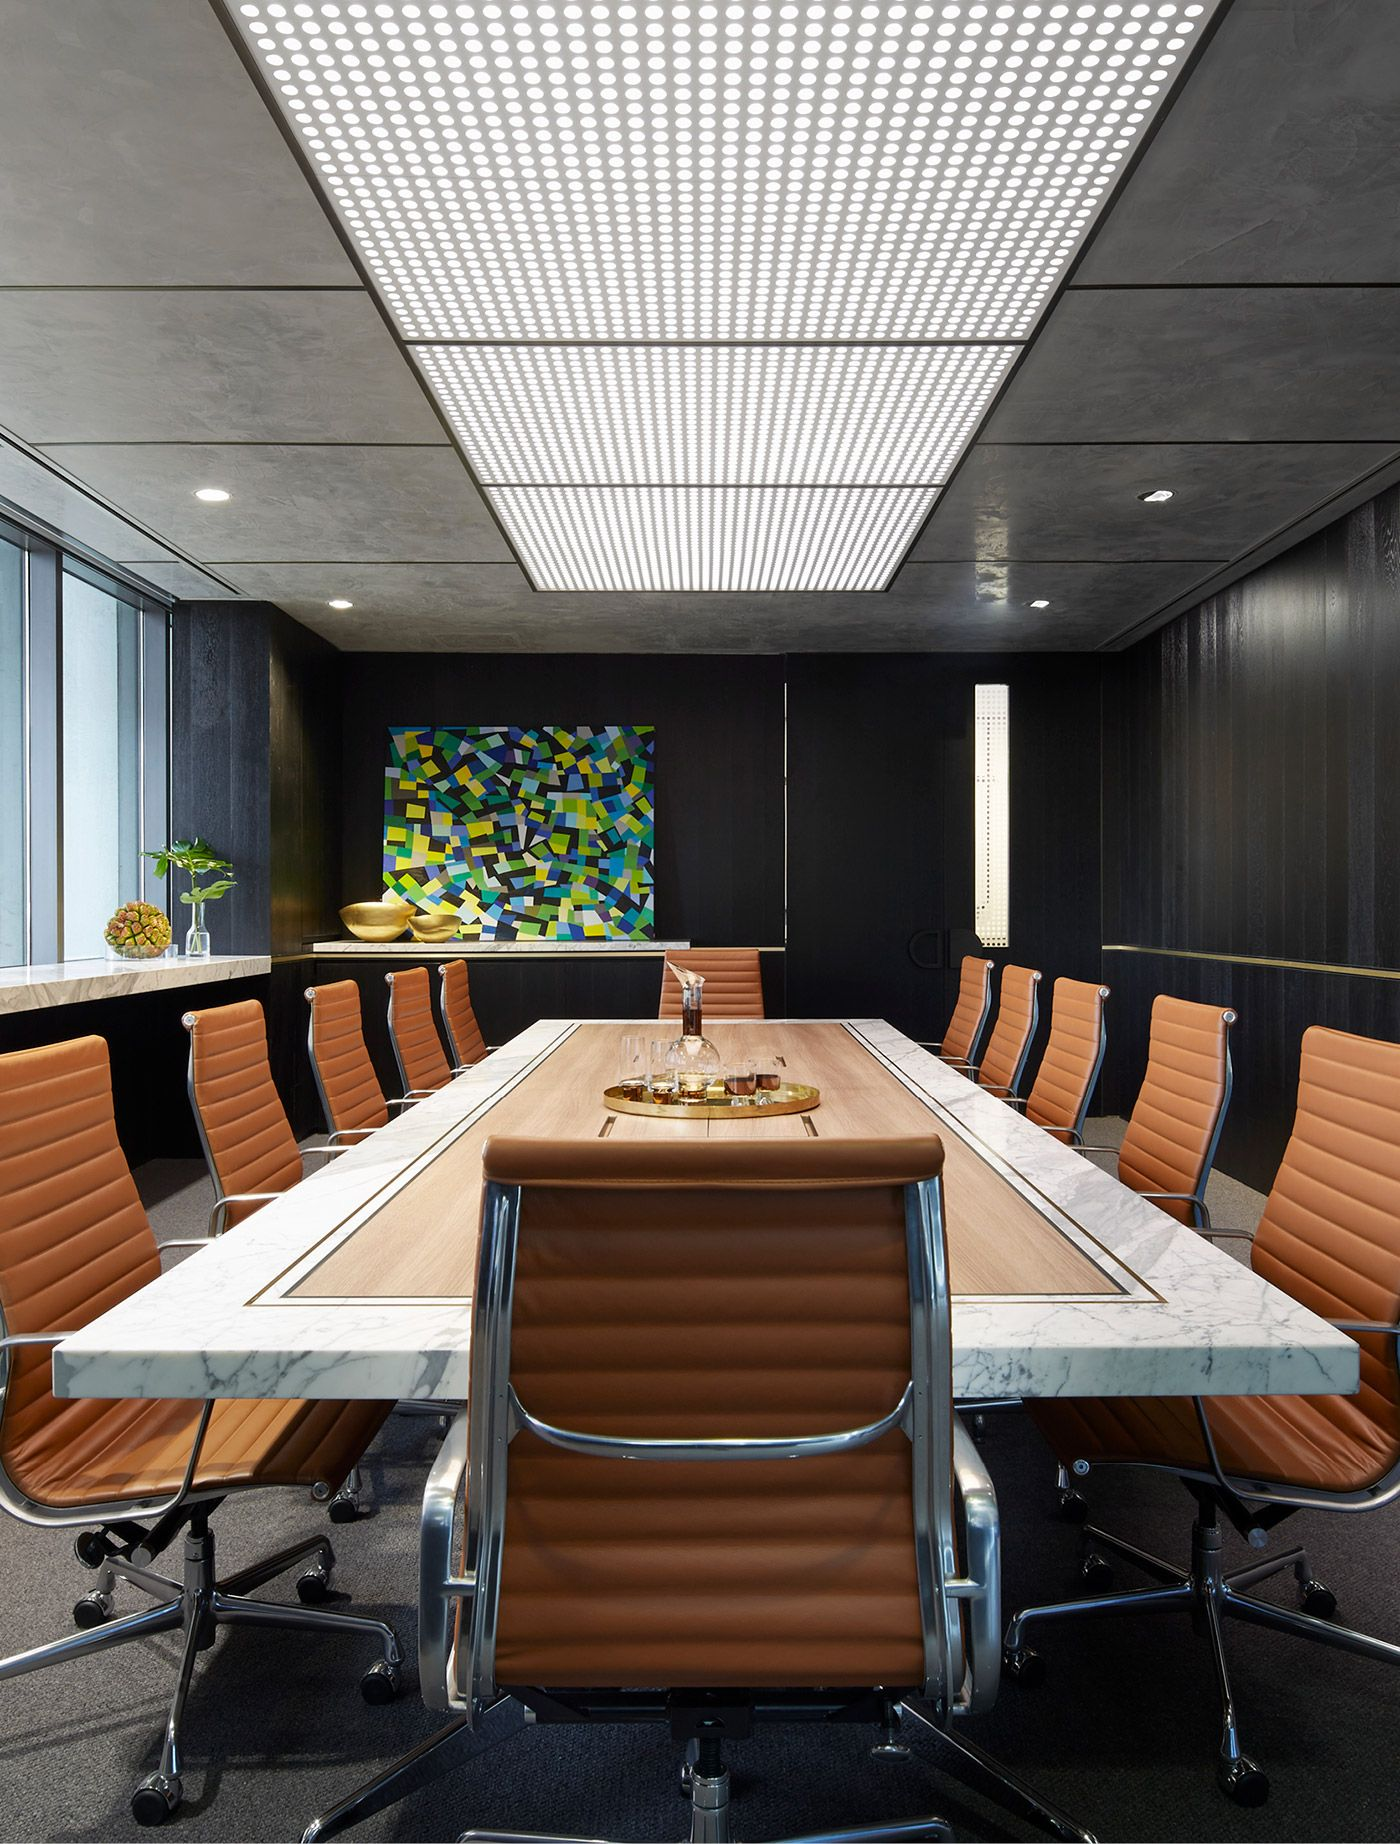 21 Conference Room Designs Decorating Ideas: Landream - Project By Mim Design